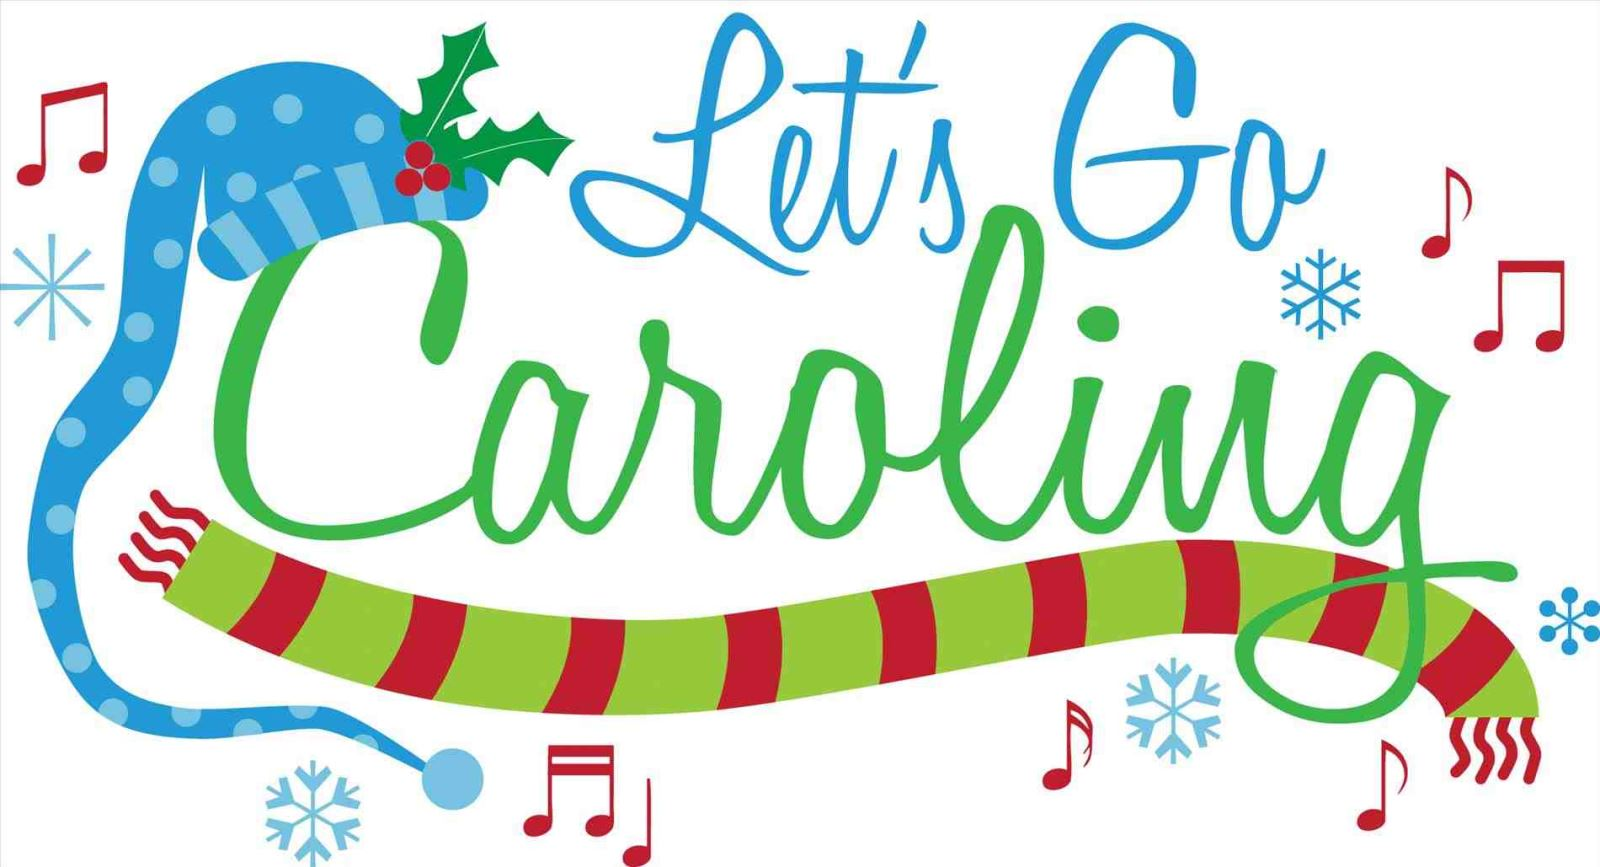 Strolling christmas carolers palm. Caroling clipart